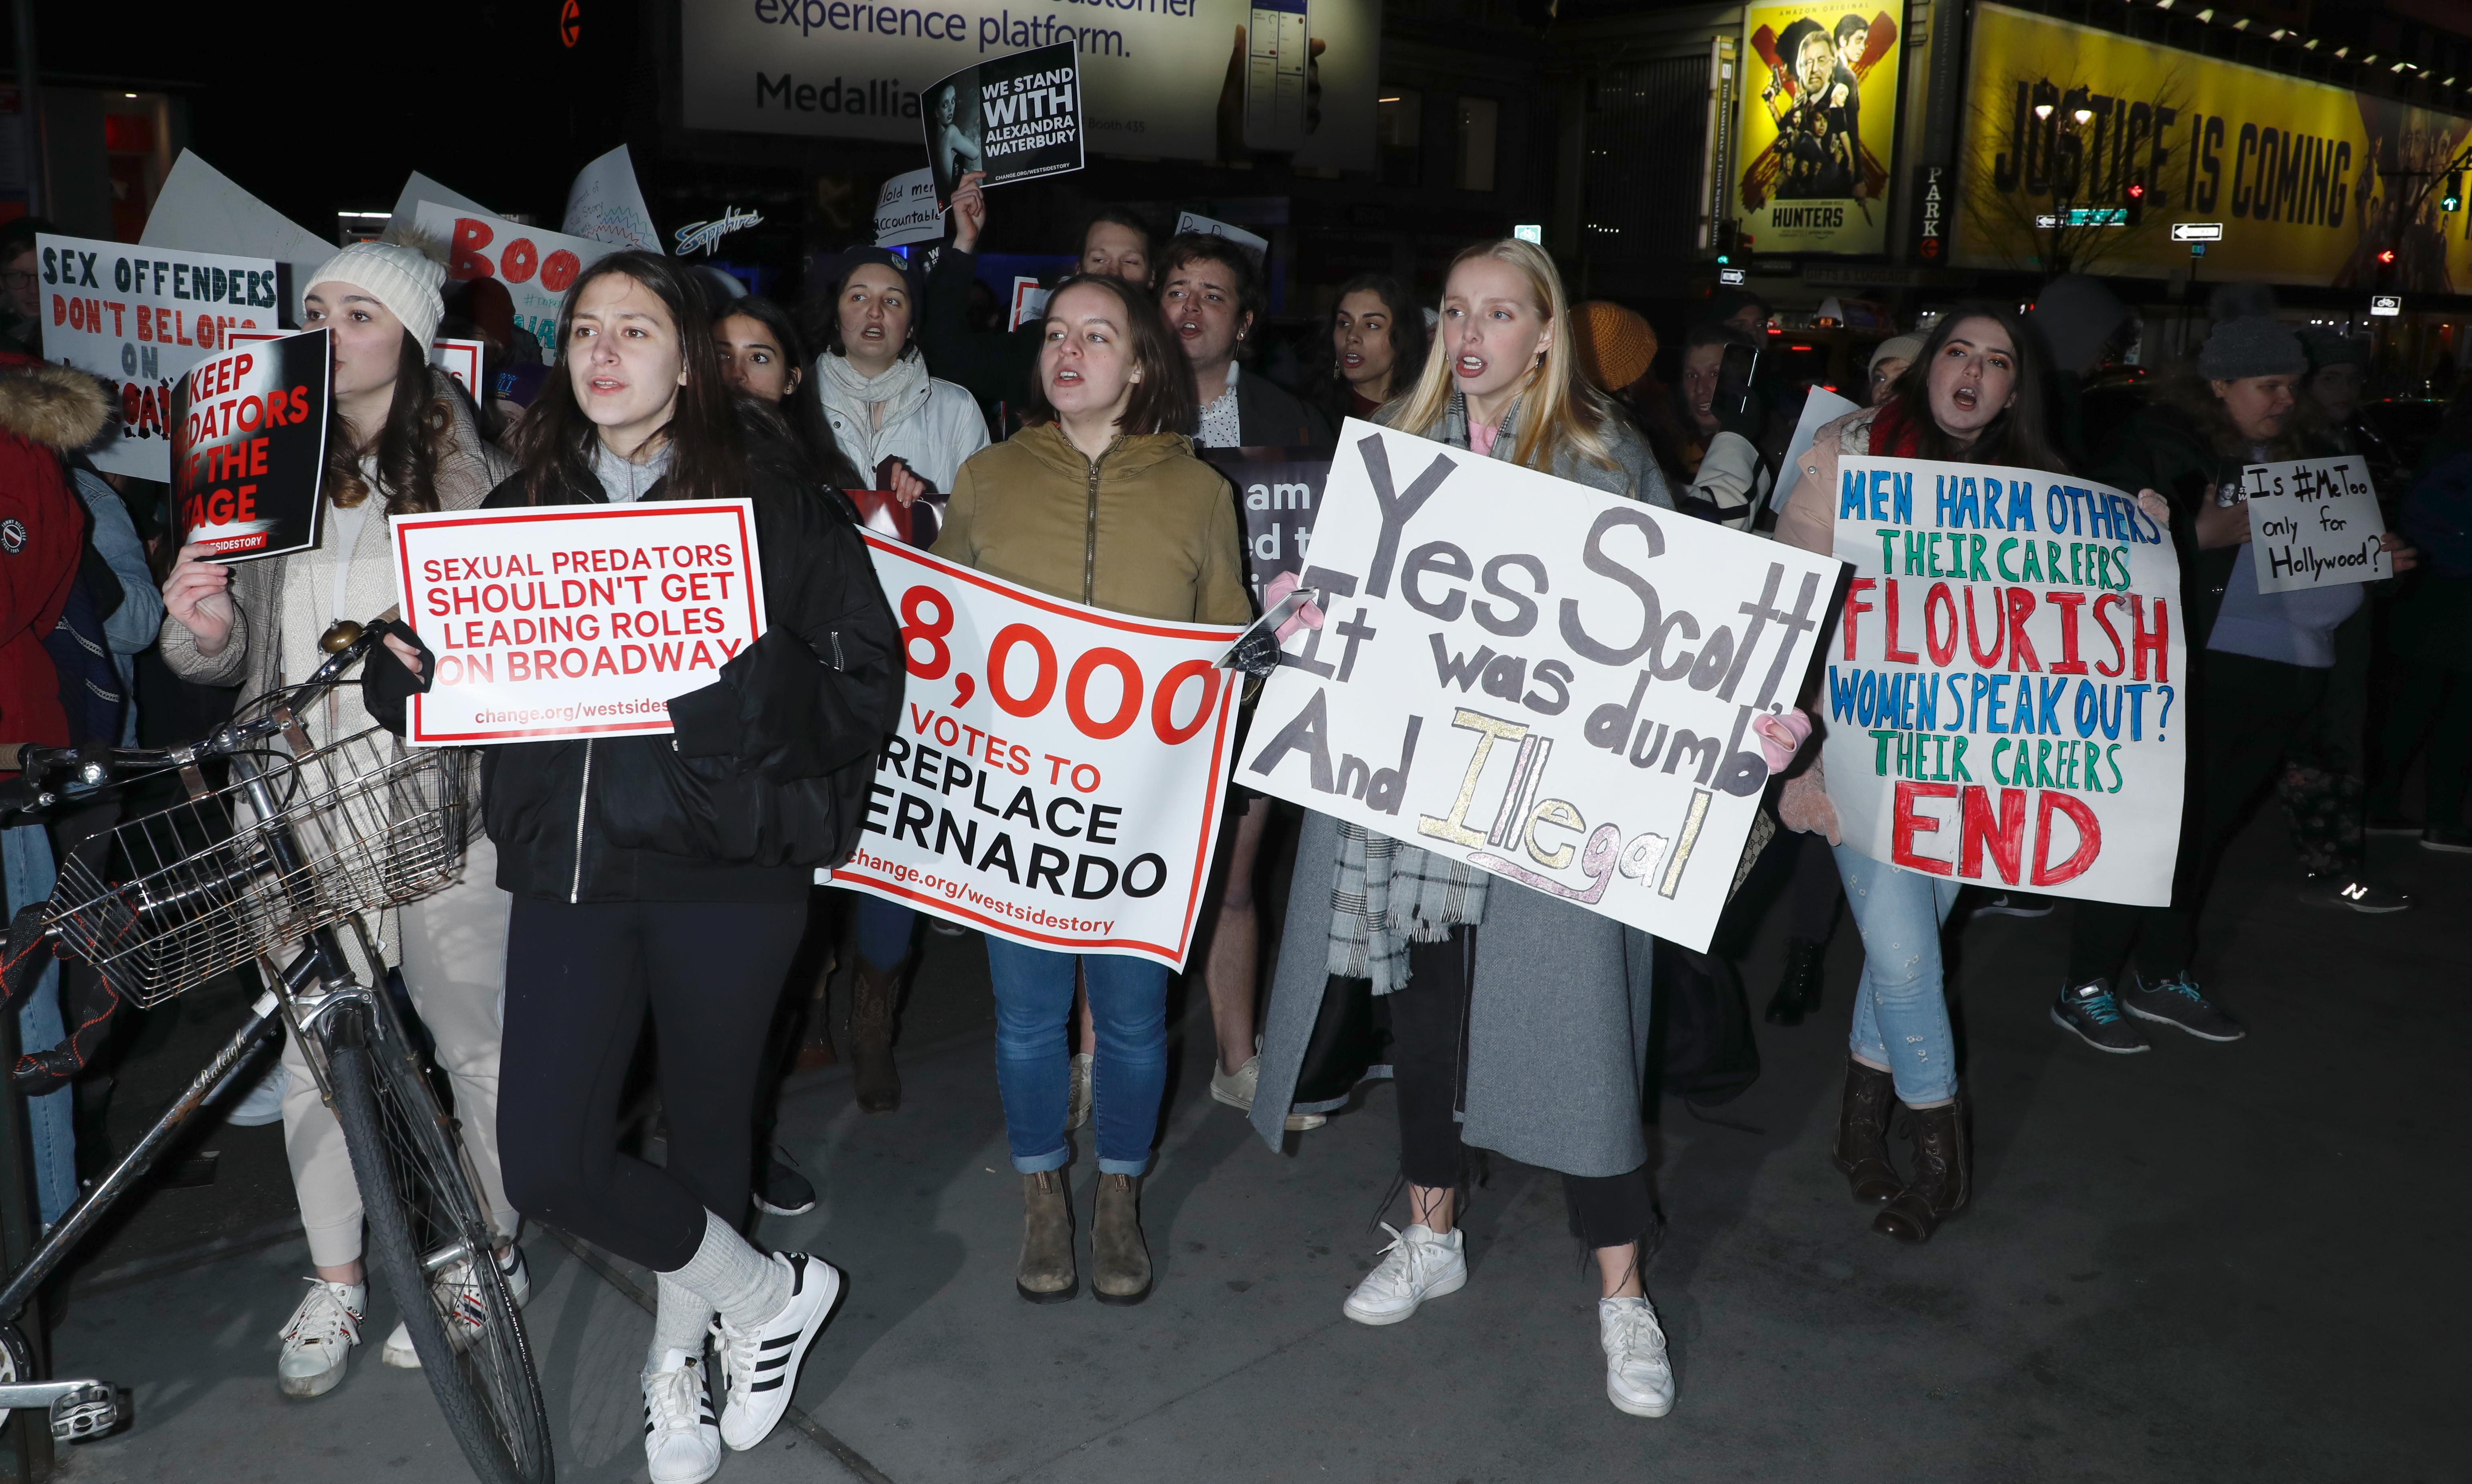 'We can't stand by this any more': inside the West Side Story premiere protest